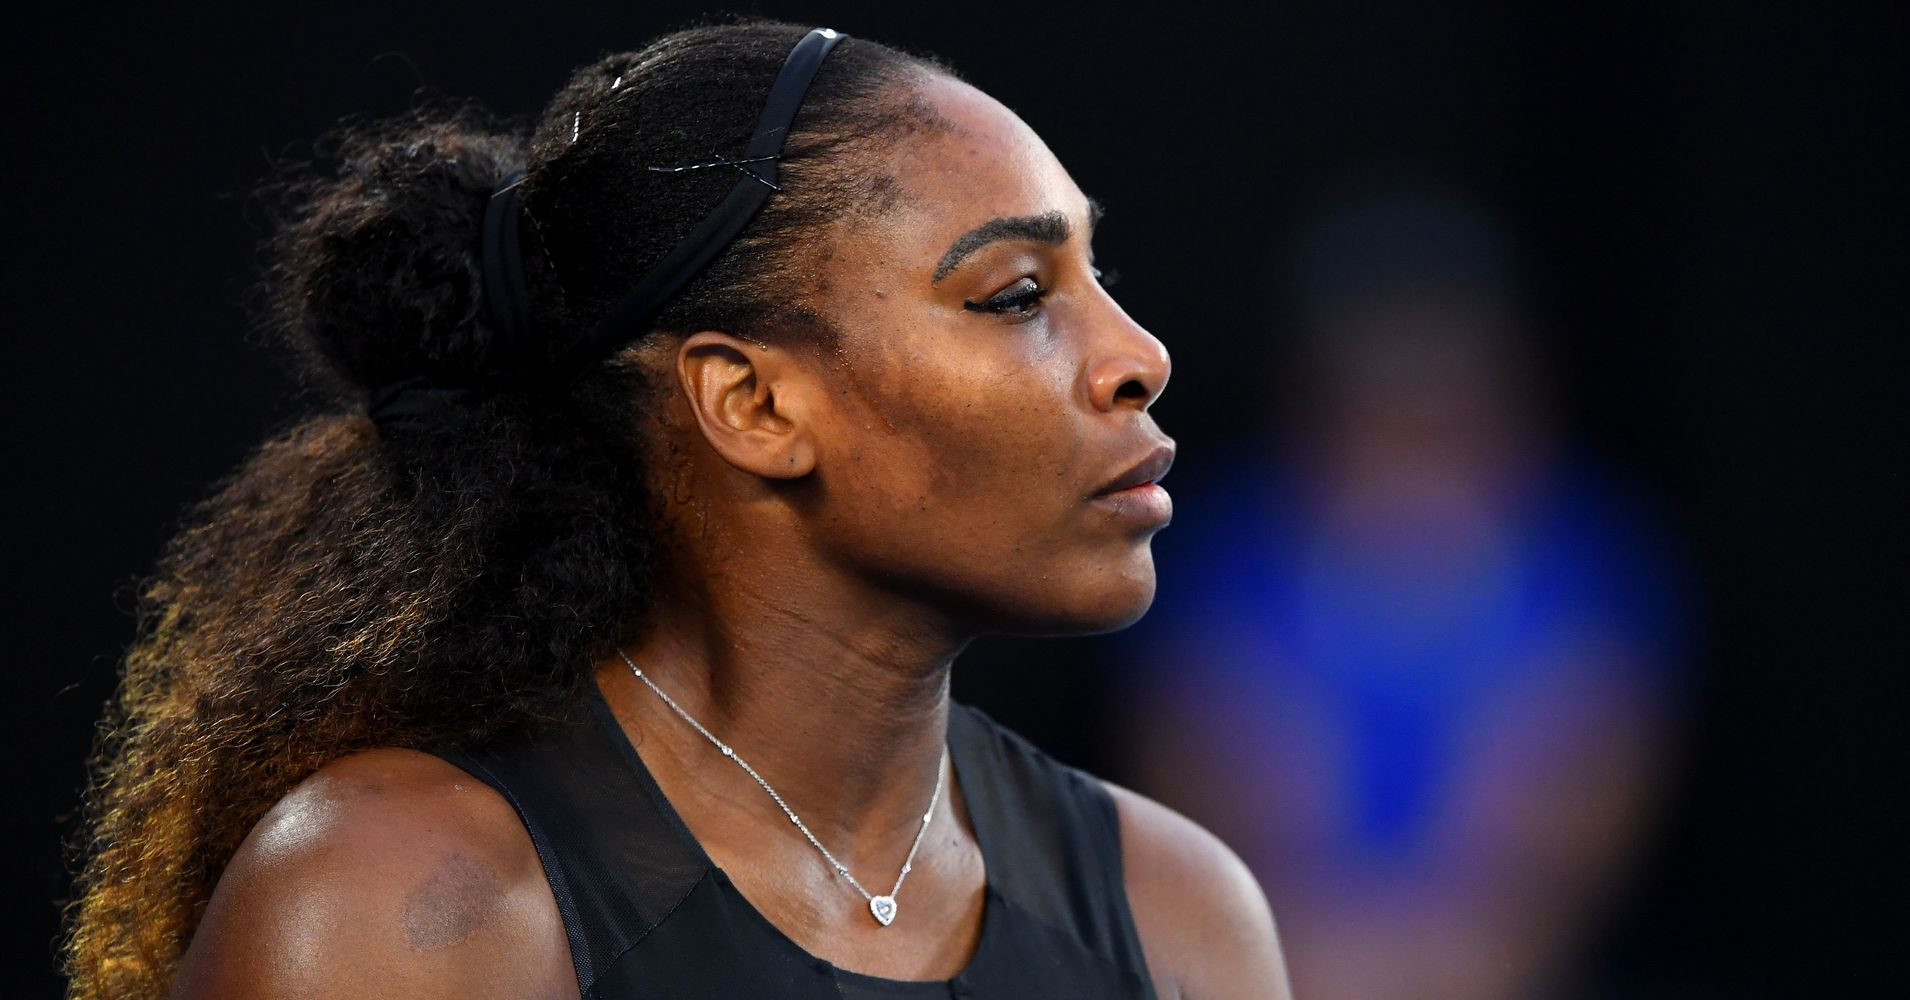 How To Say Good Morning In Korean Audio : Serena williams makes powerful plea for black women to get